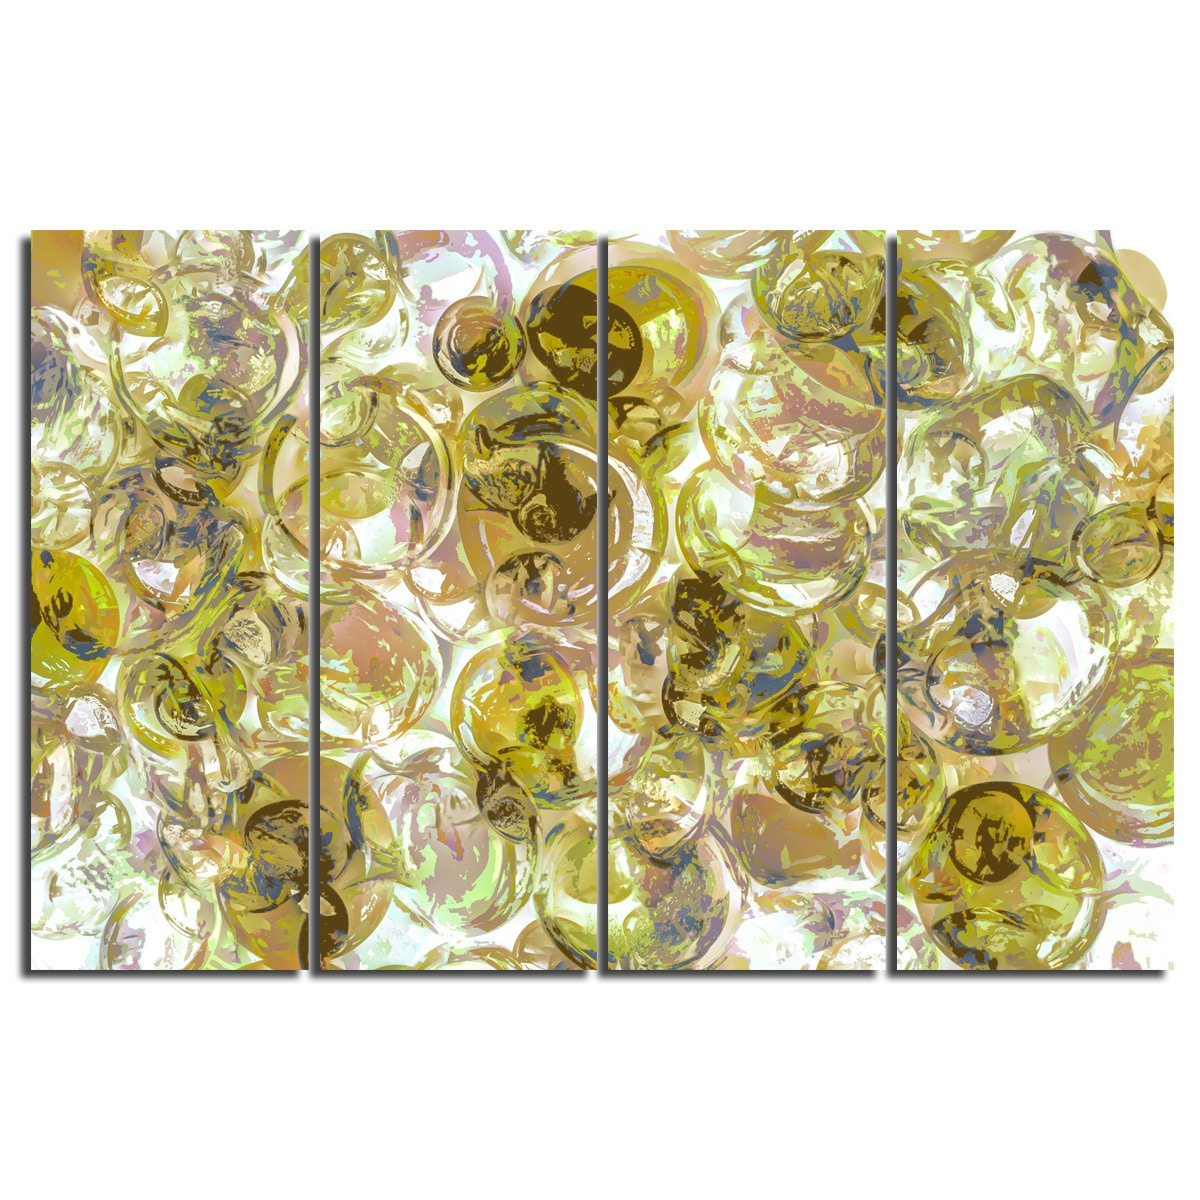 Charming Wall Decor 3 Piece Set Contemporary - The Wall Art ...